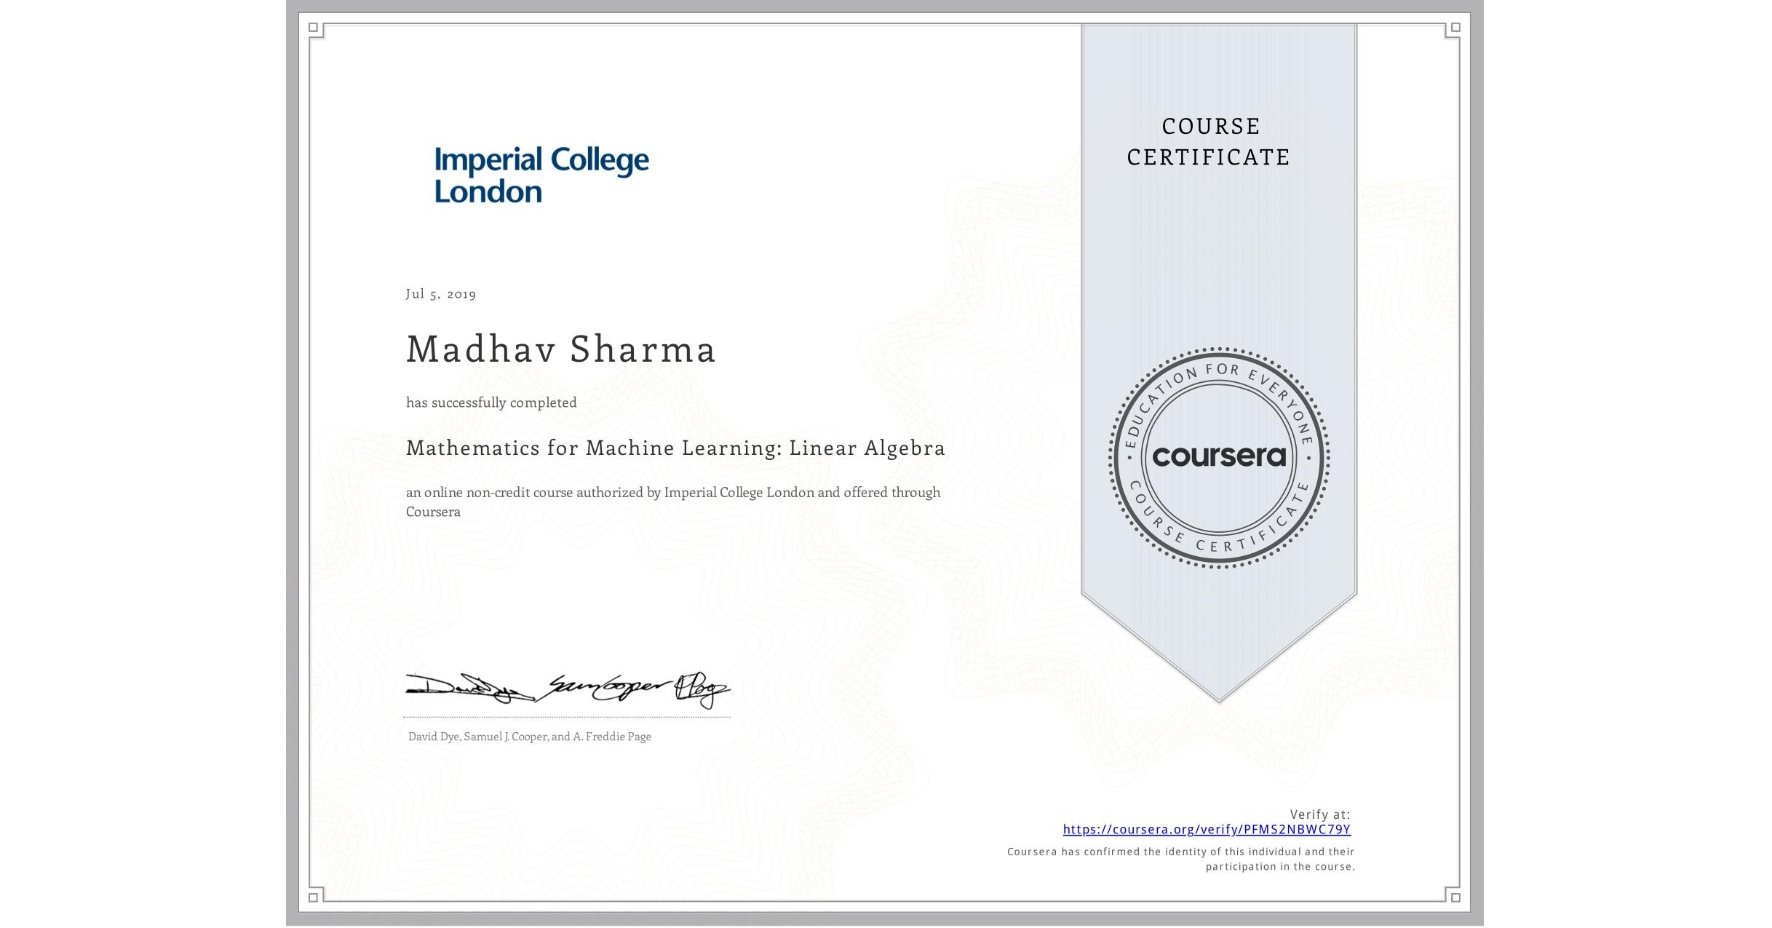 View certificate for Madhav Shekhar  Sharma , Mathematics for Machine Learning: Linear Algebra, an online non-credit course authorized by Imperial College London and offered through Coursera